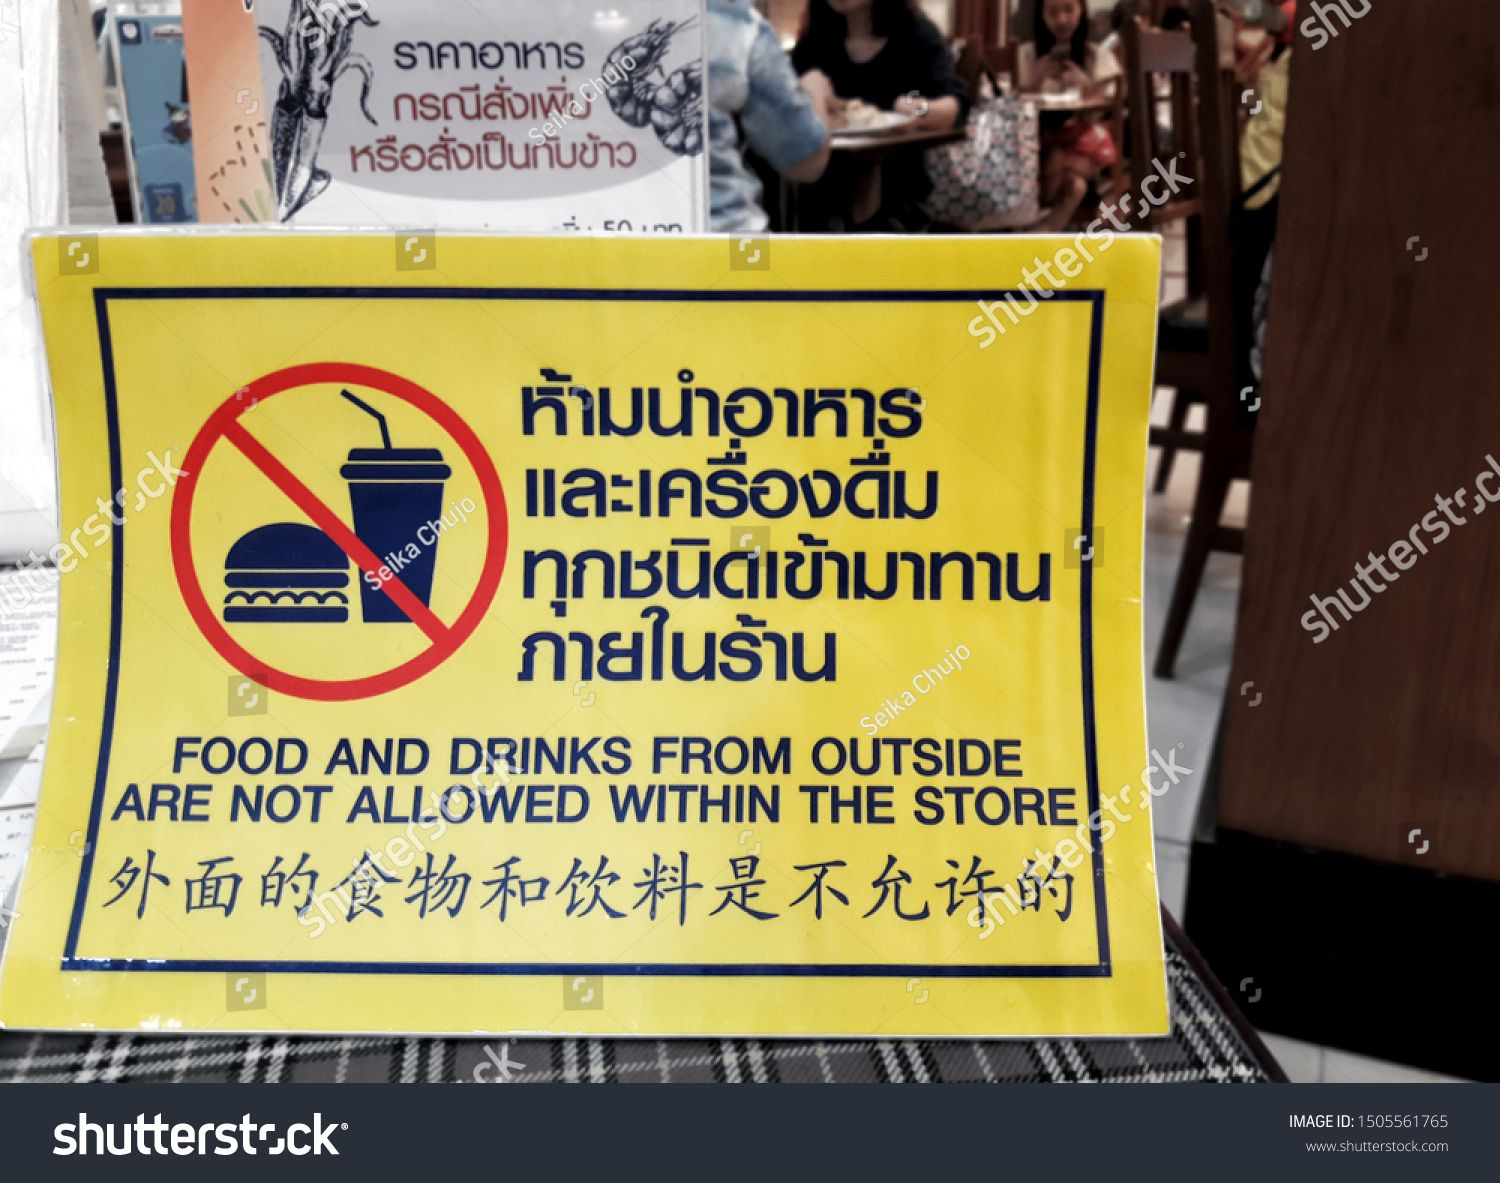 BANGKOK, THAILAND - SEPTEMBER 15: Foodland dinner displays big yellow sign to prohibit consumption of food and drinks from outside the restaurant on September 15, 2019. #Sponsored , #AD, #dinner#Foodland#big#displays